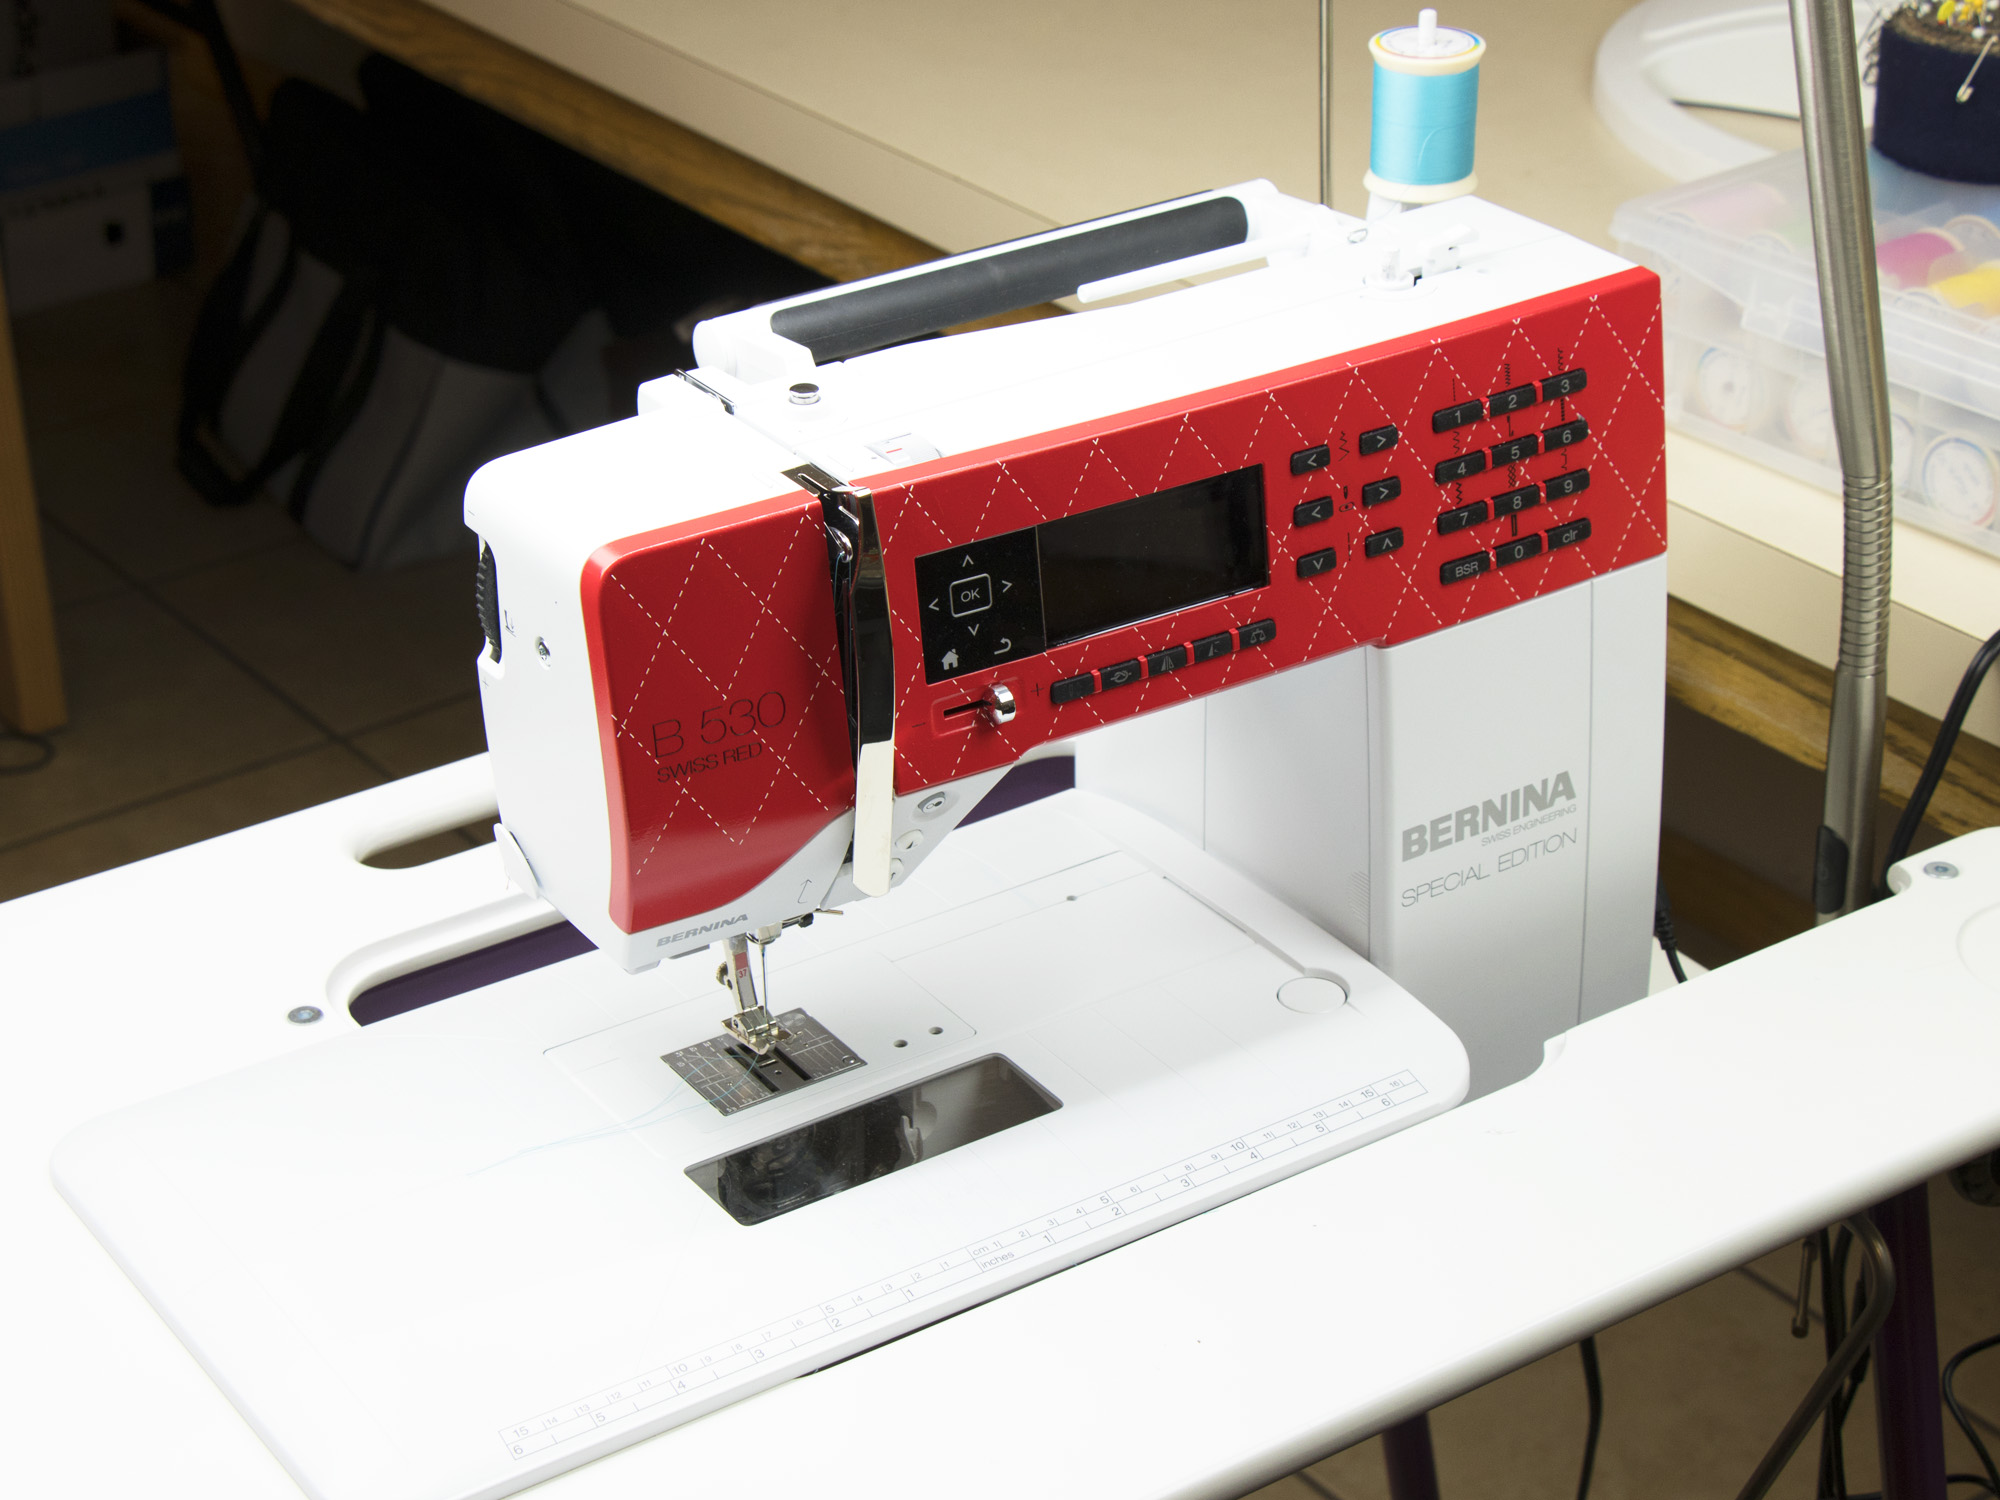 Machine maintenance and upkeep note several ladies in the byannie sewing studio commented on how they love tables which allow you to drop the sewing machine down into the table watchthetrailerfo